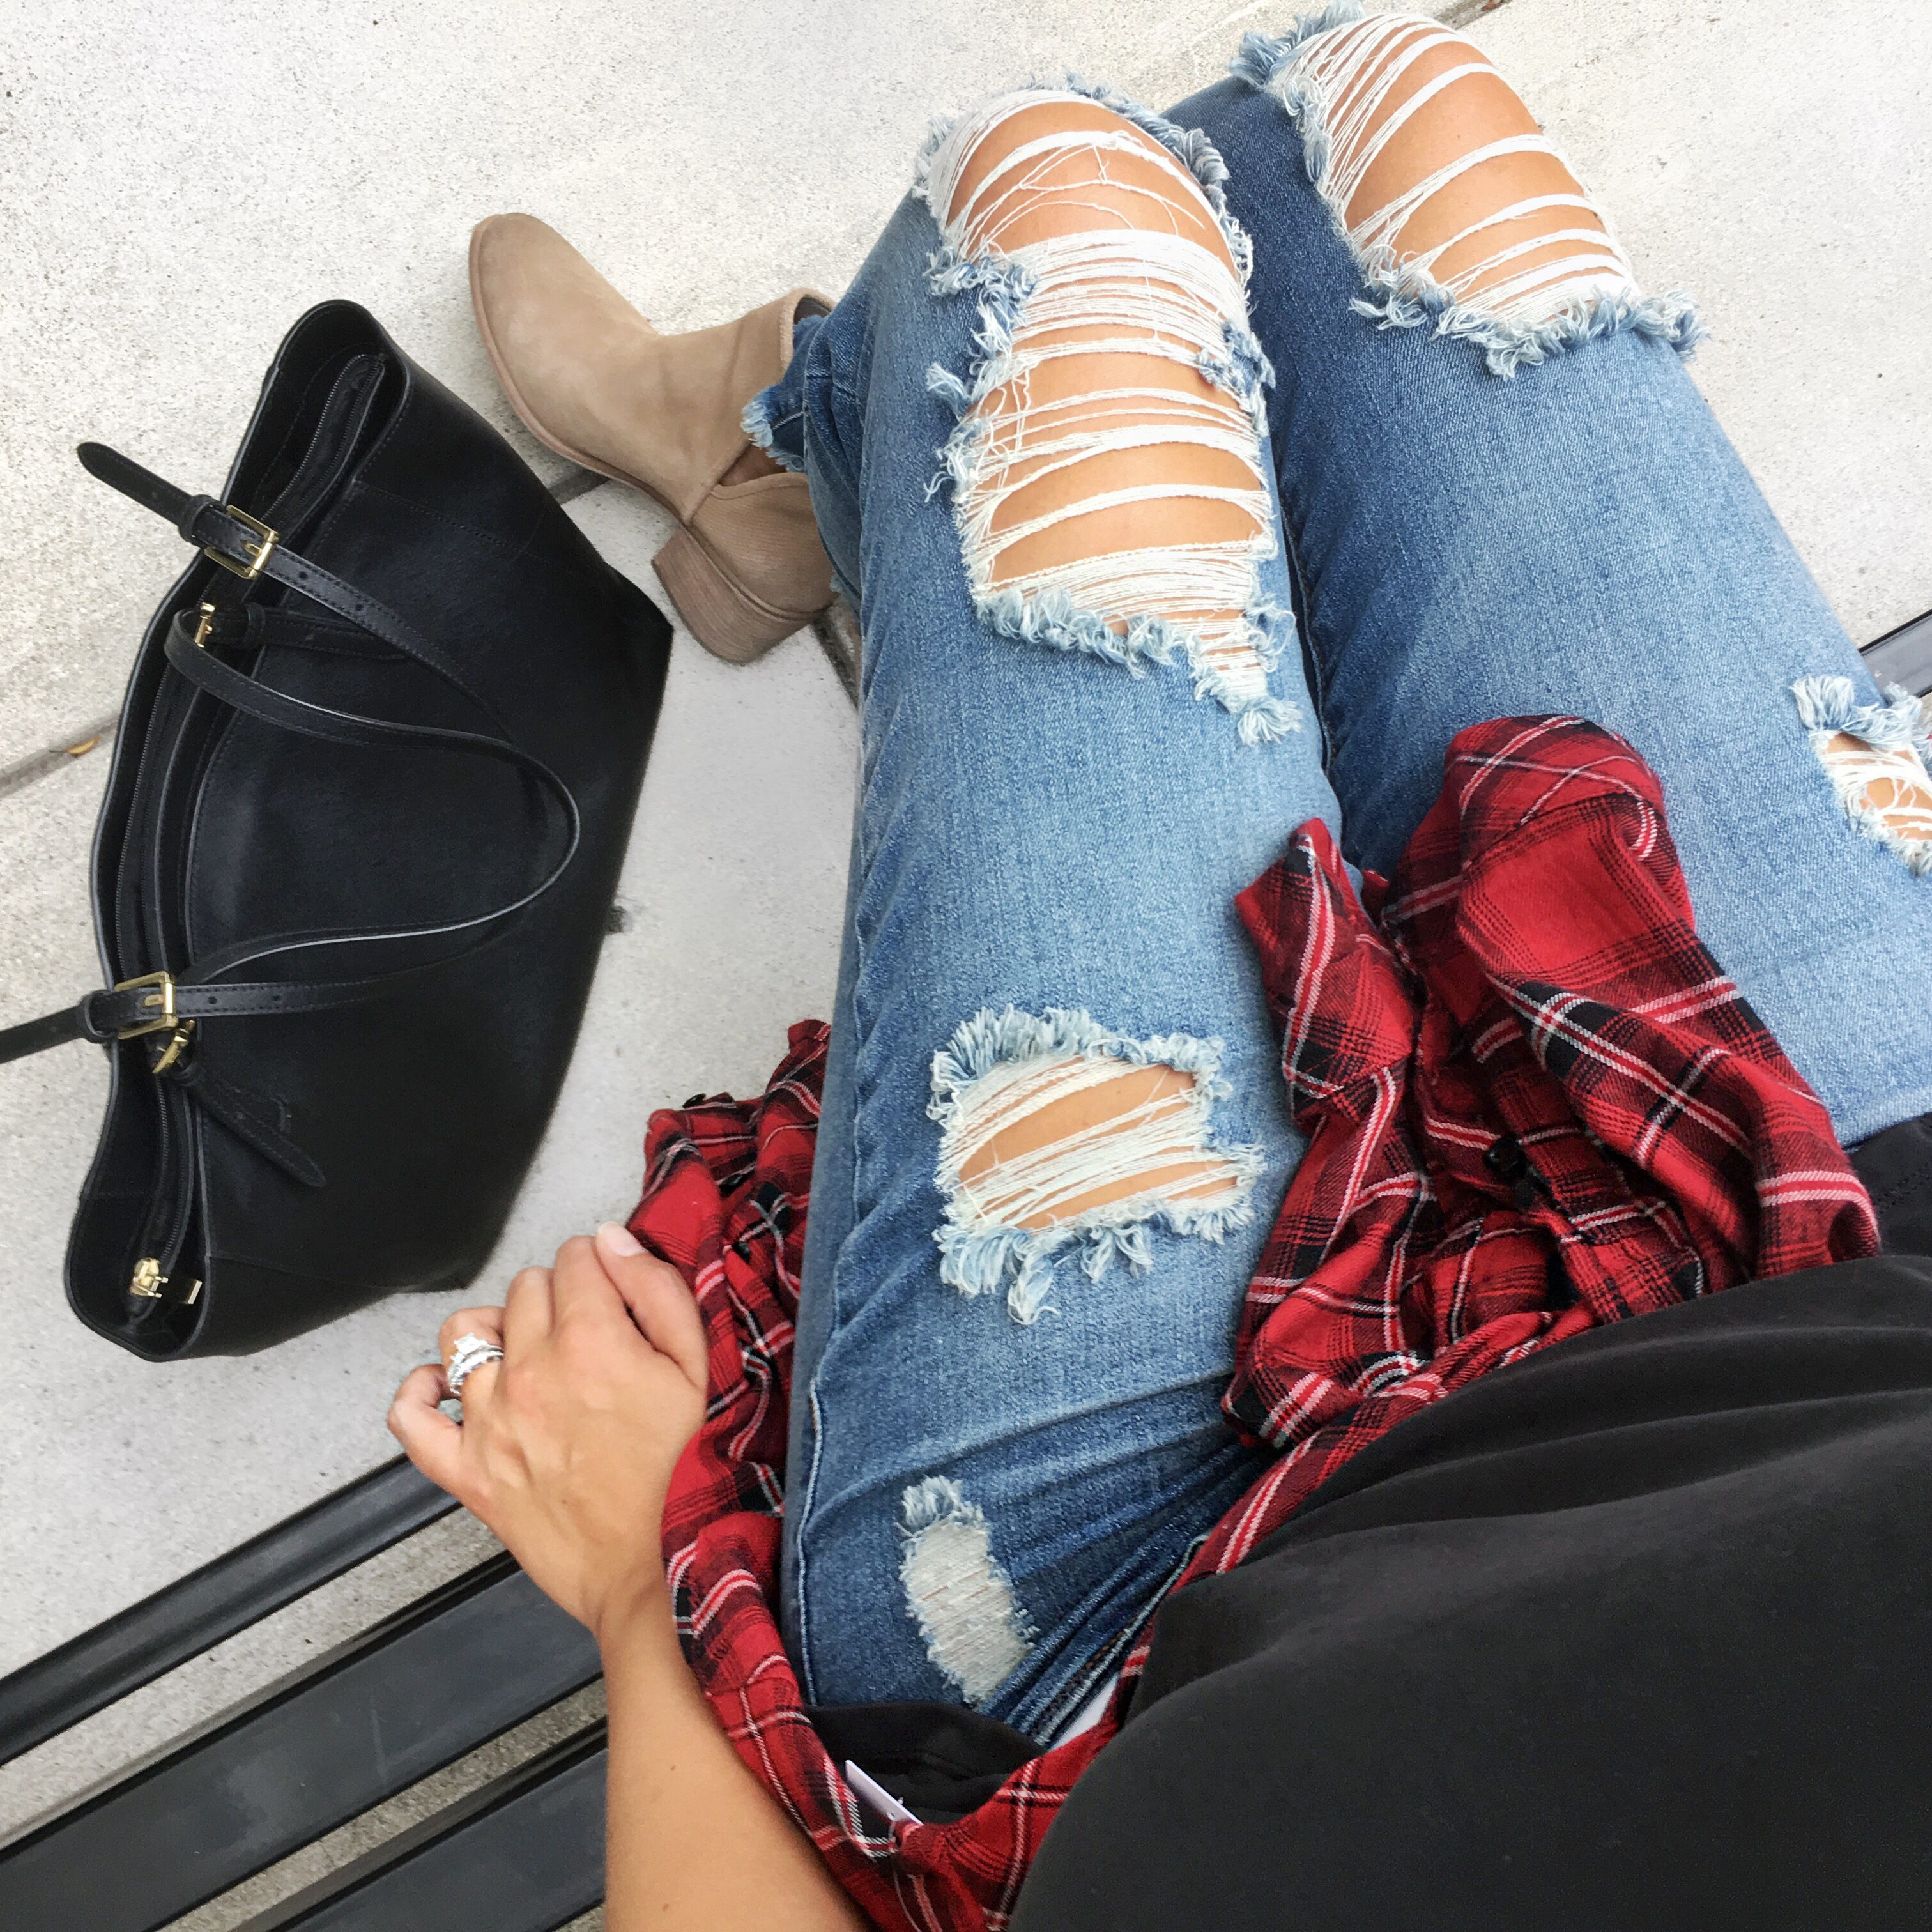 top instagram outfits of july - distressed jeans and plaid | bylaurenm.com